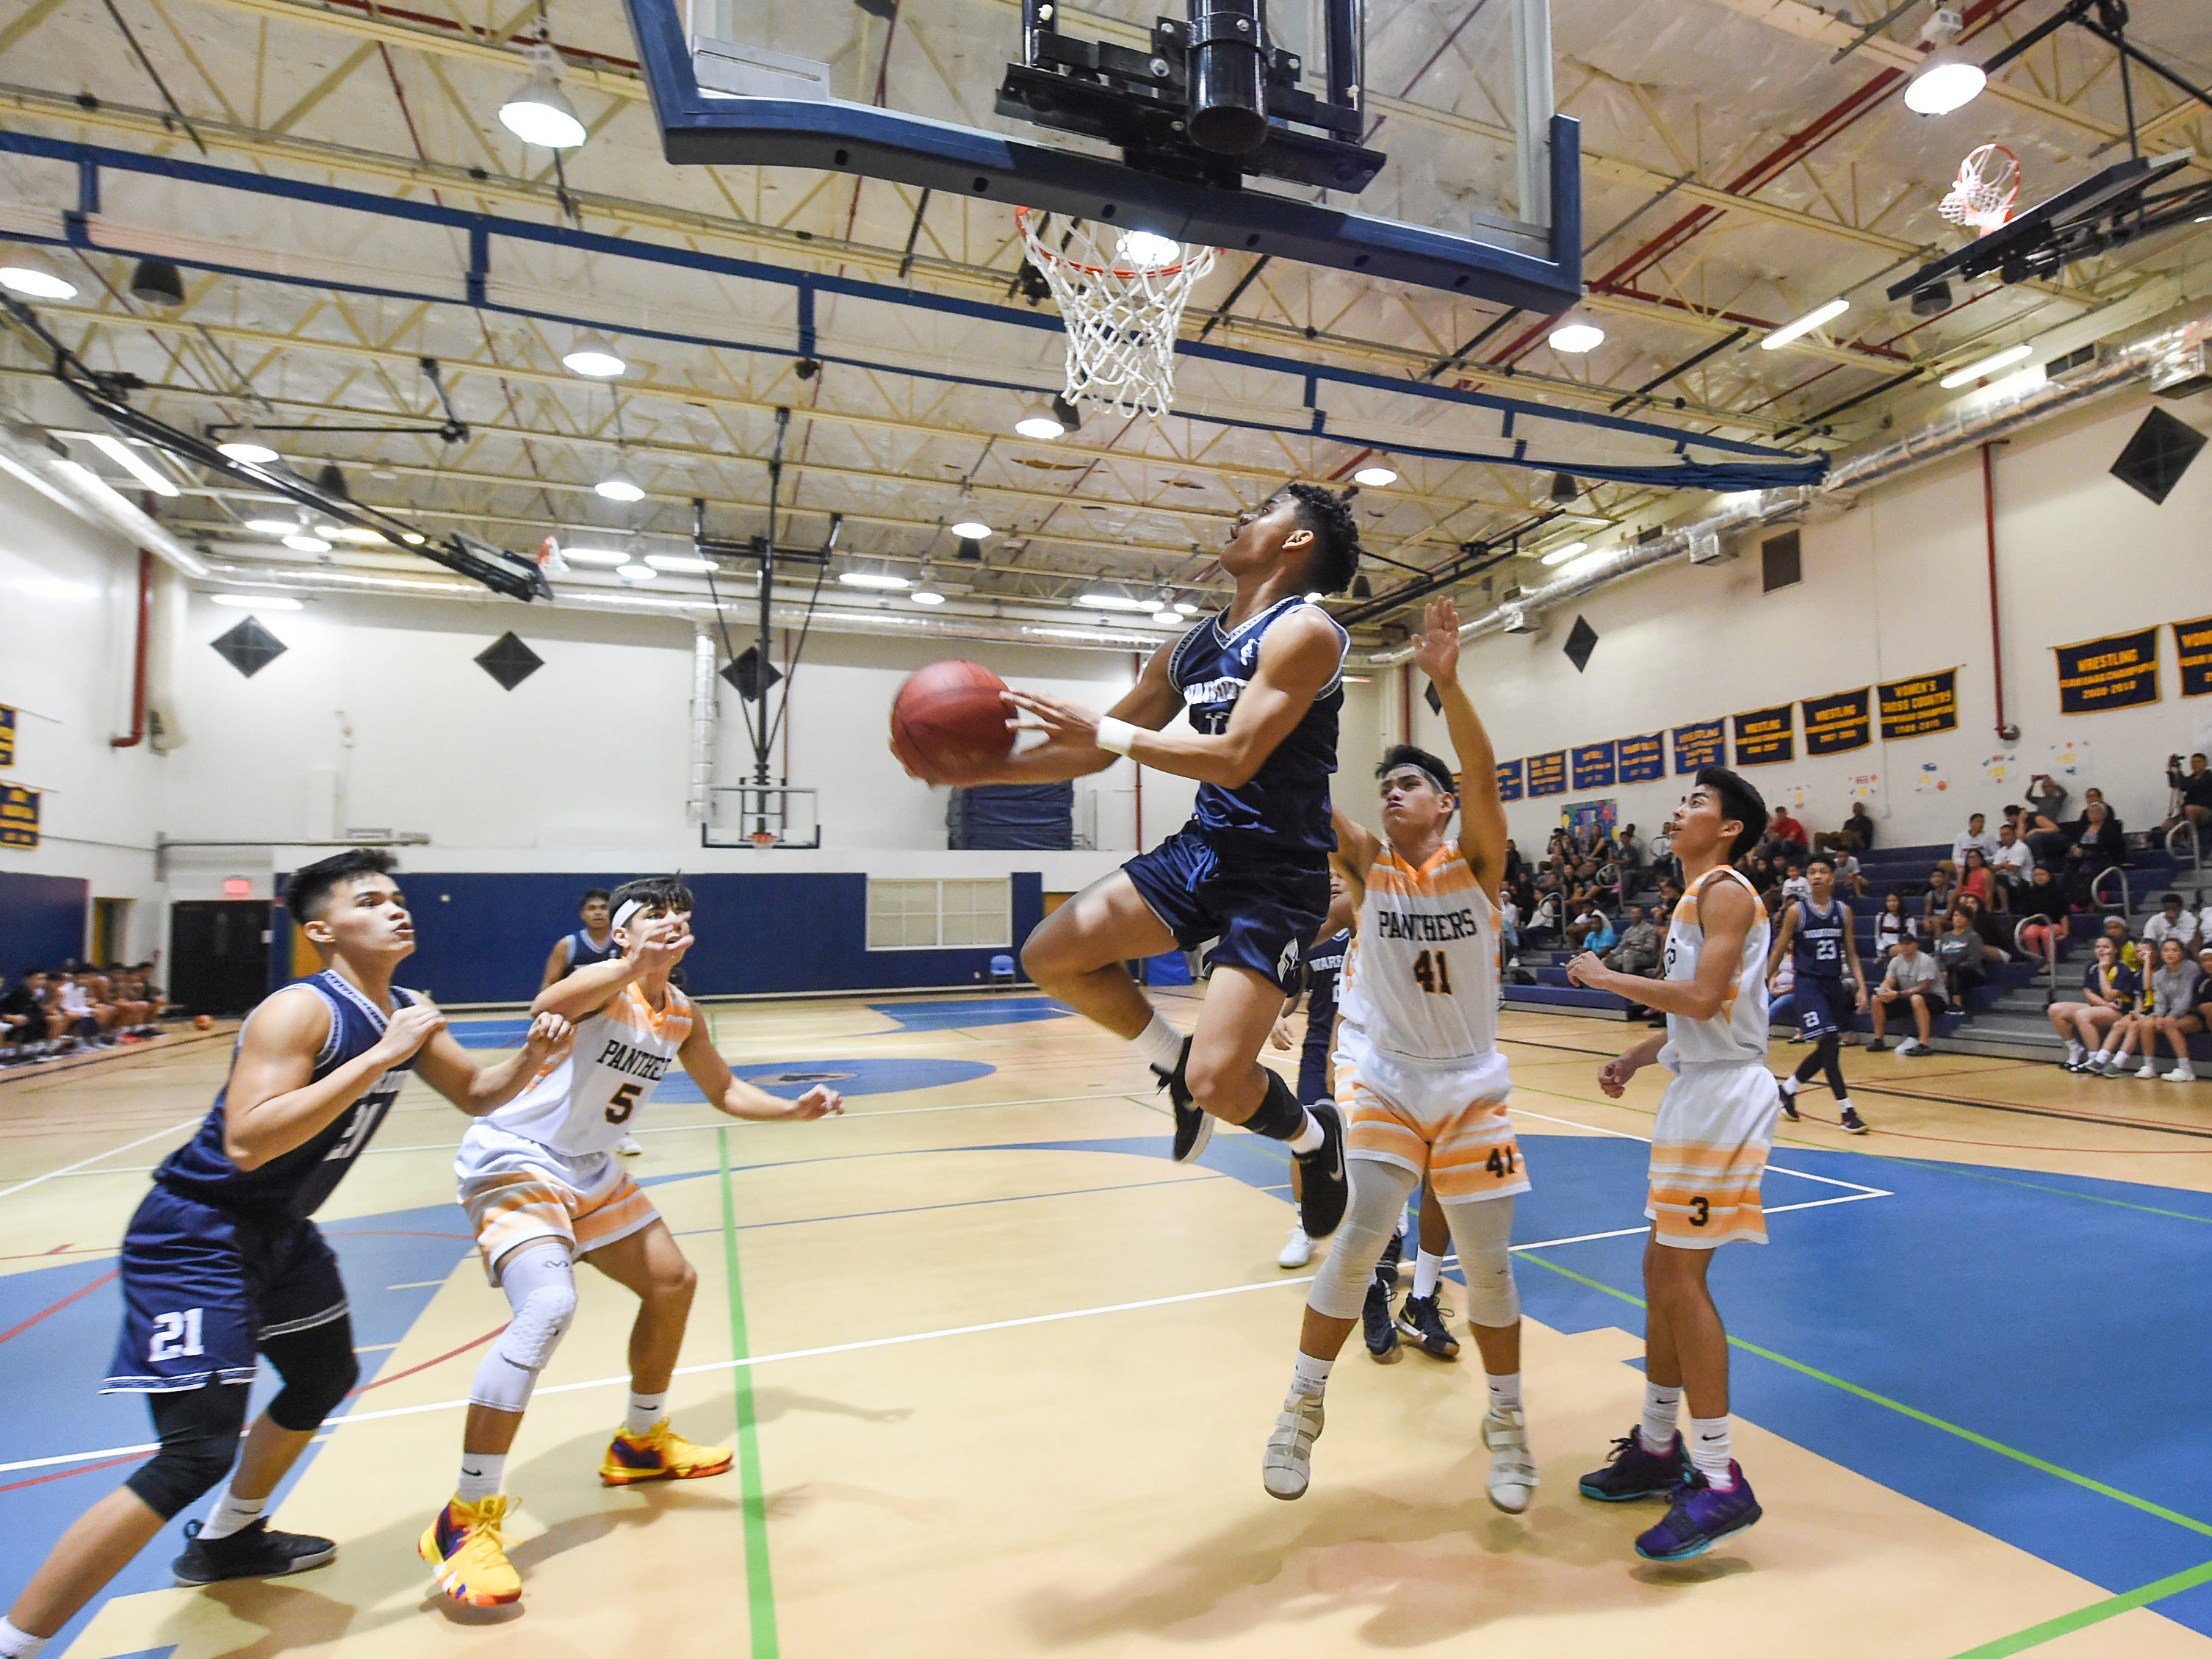 St. Paul's Jahmar White goes for a reverse layup against the Guam High Panthers during their IIAAG Boys' Basketball game at the Guam High School Gym, Feb. 5, 2019.